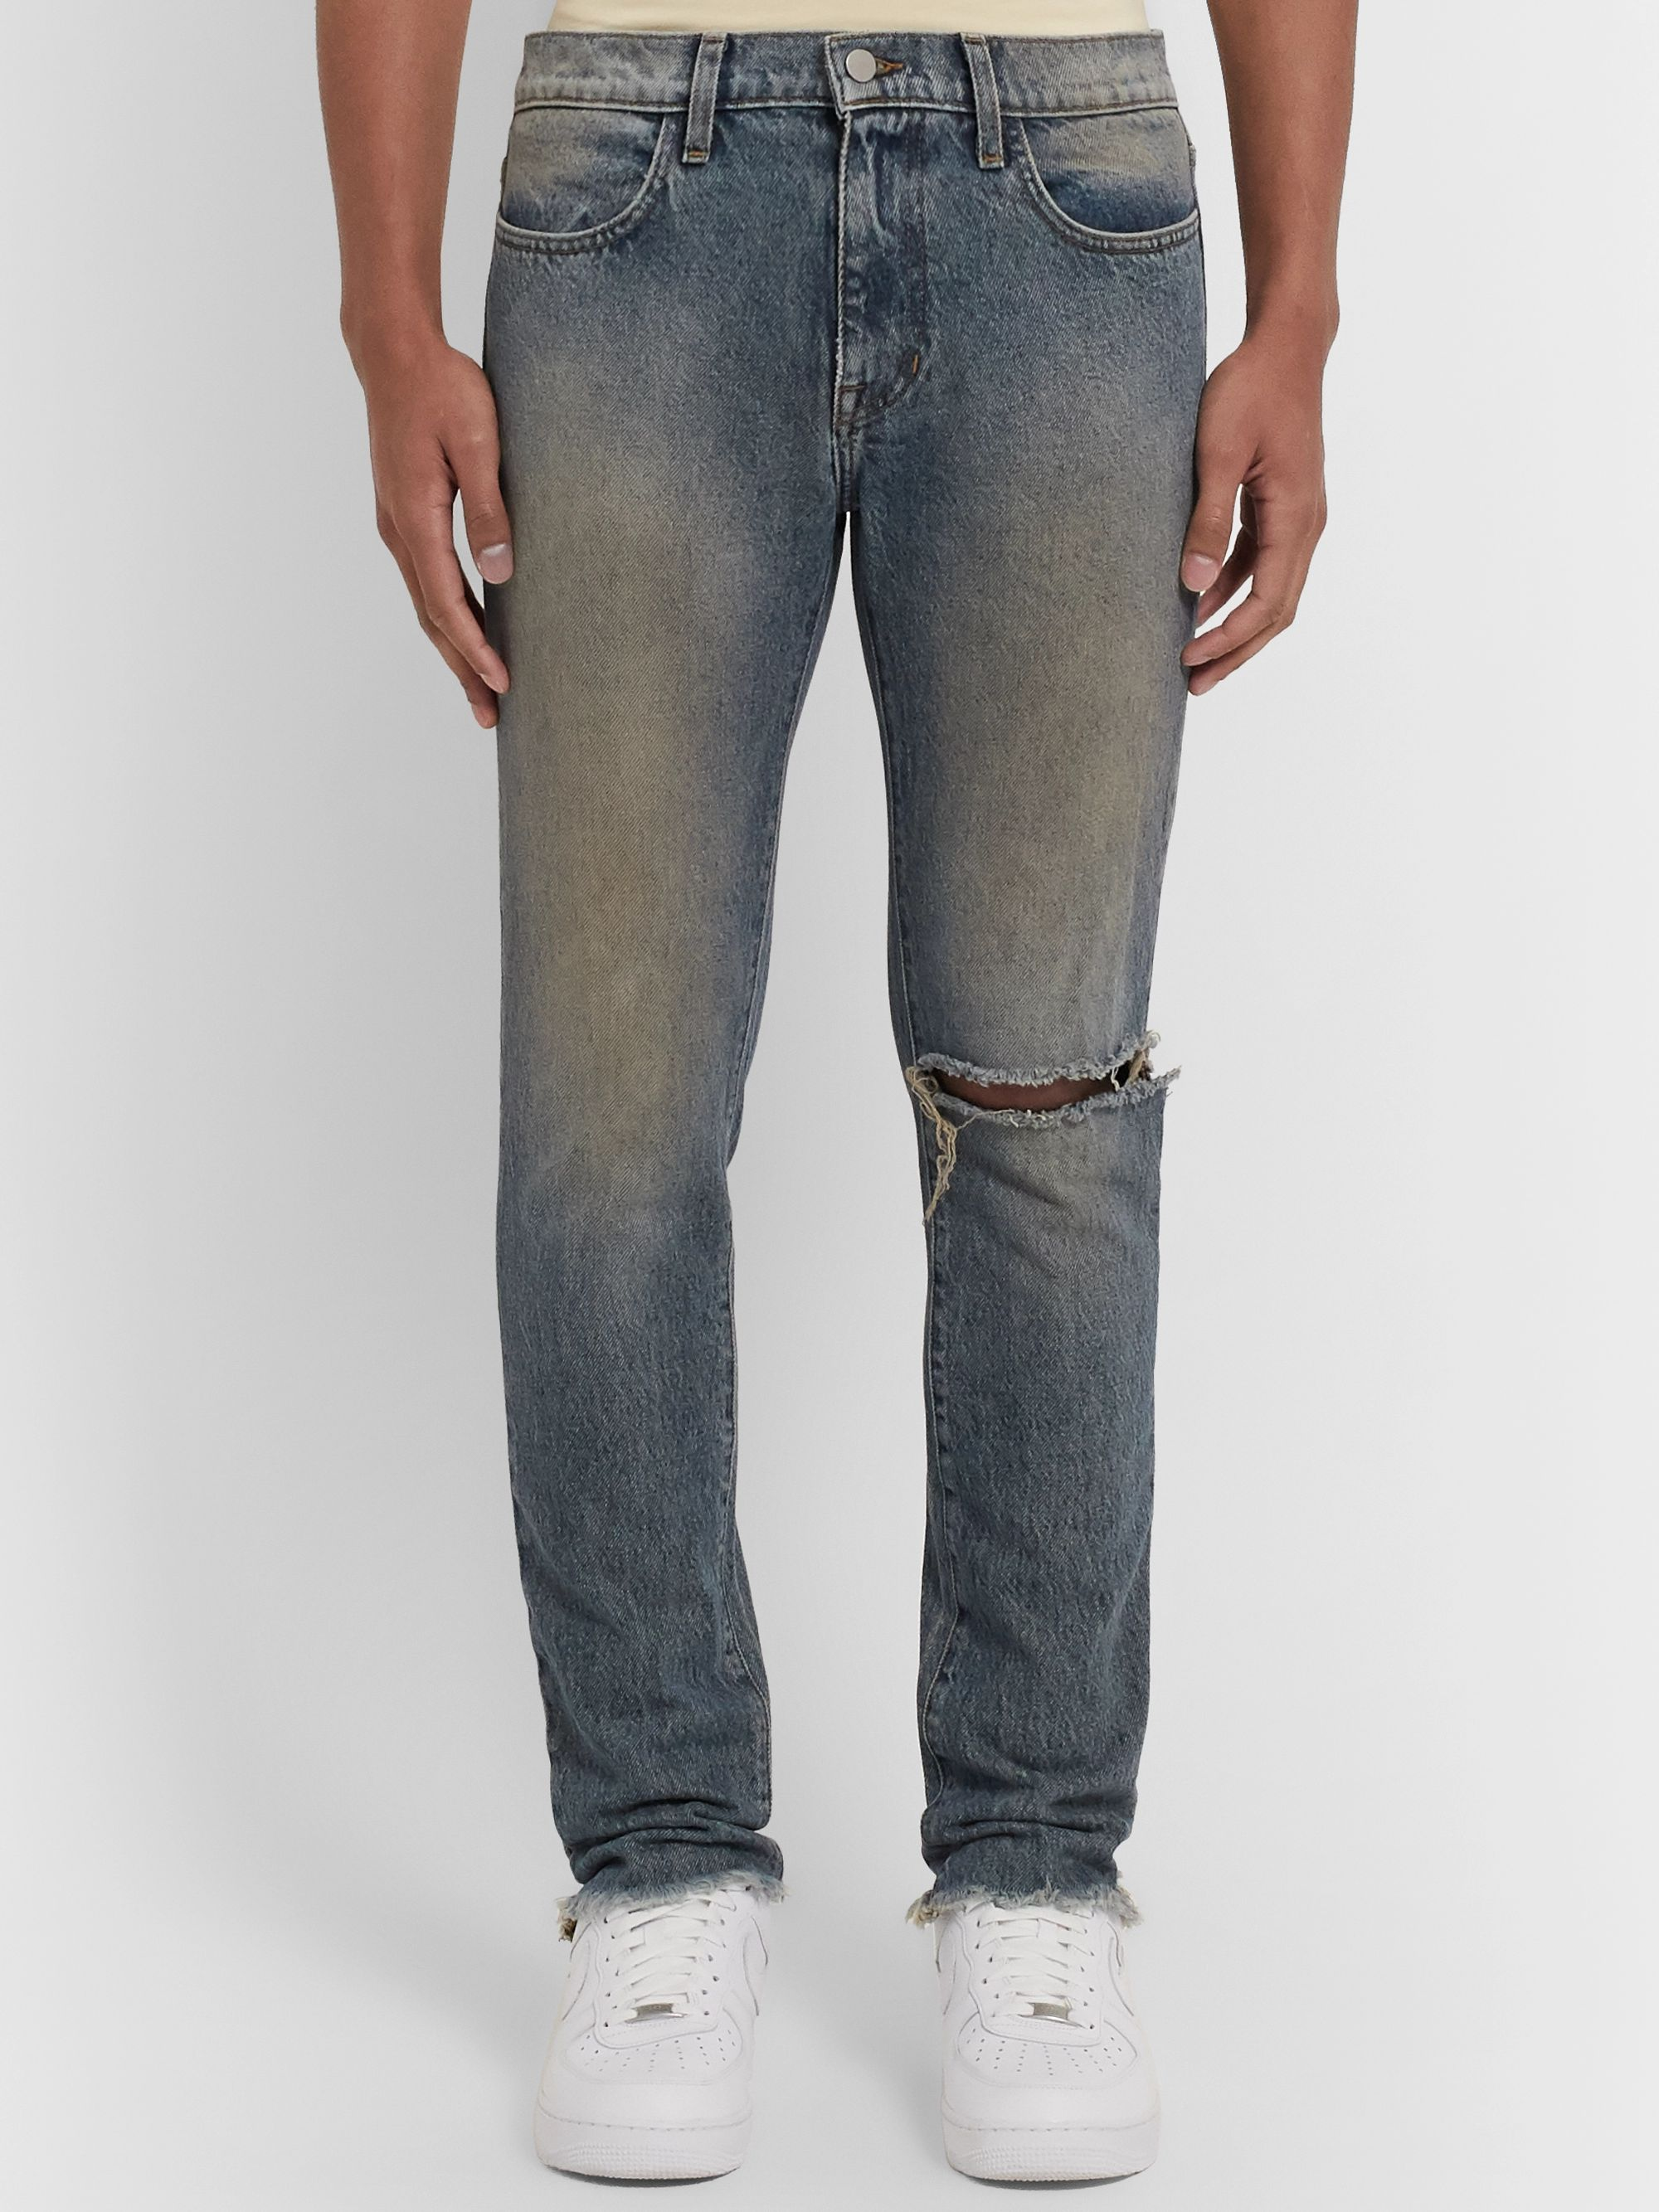 424 Distressed Denim Jeans